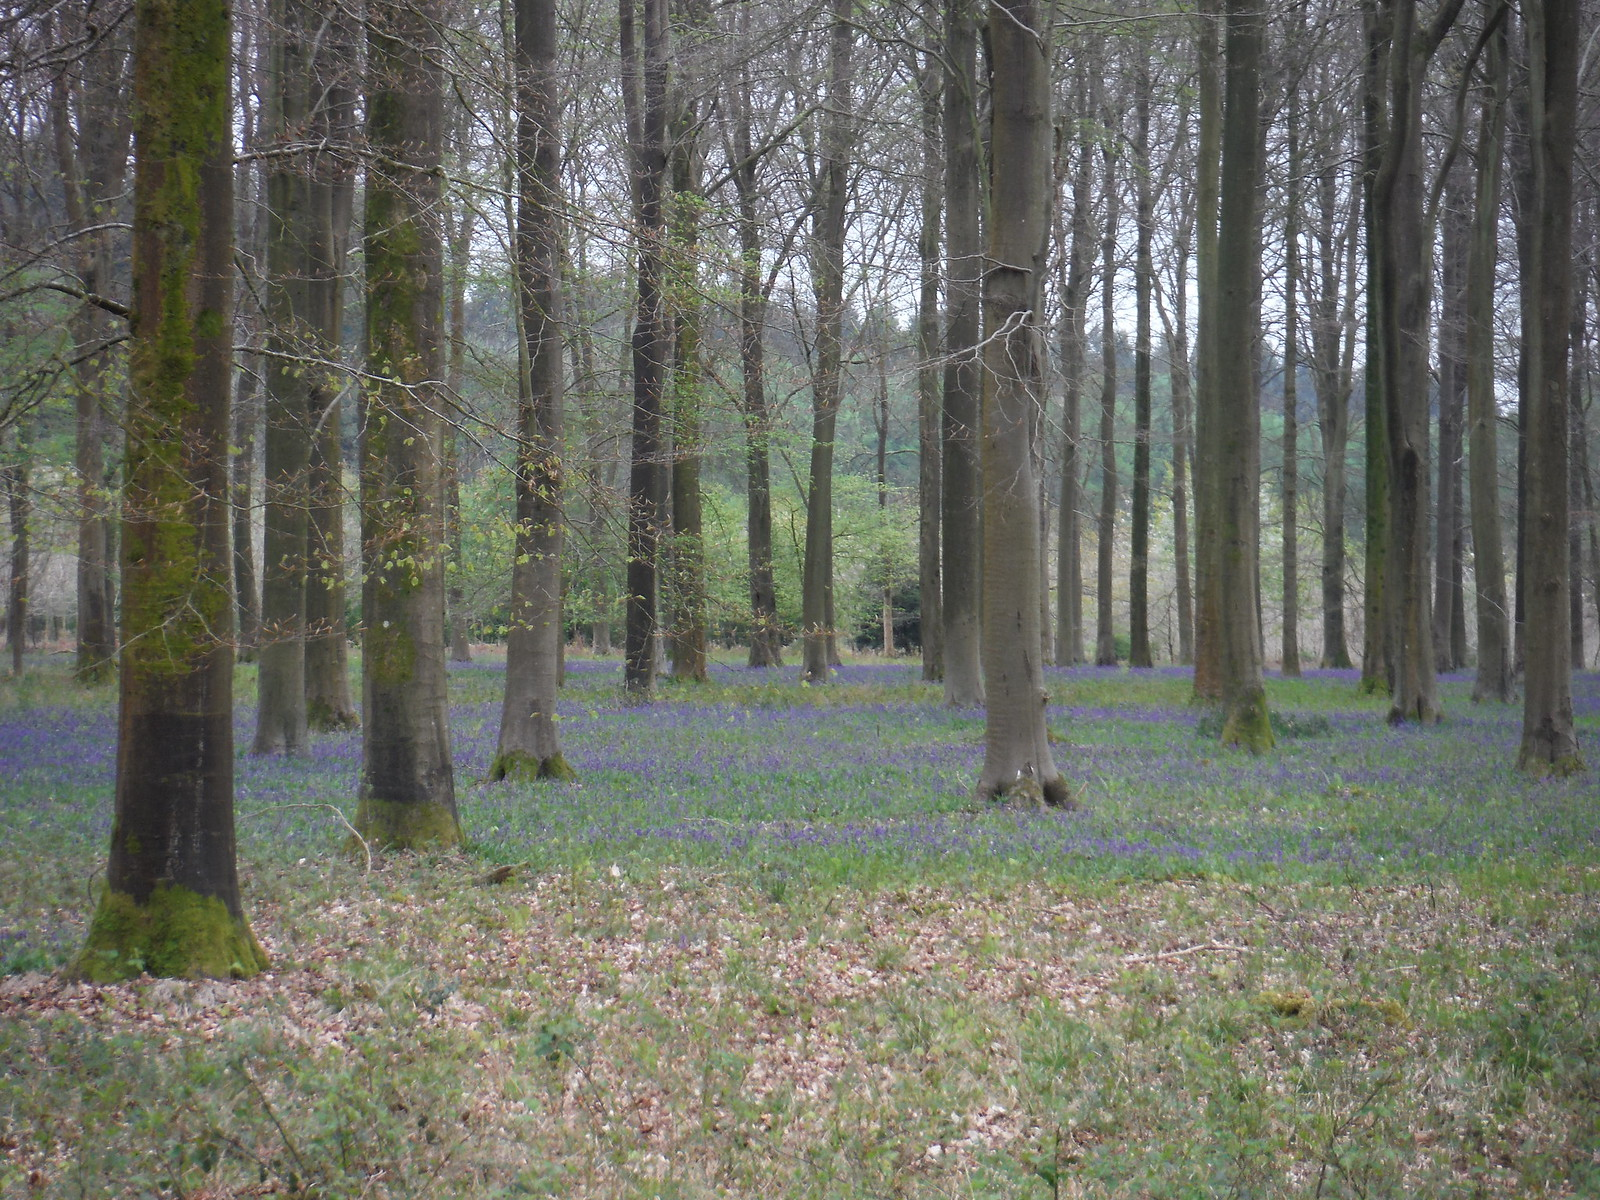 Fairoak Copse, Clarendon Park SWC Walk 265 - Dean to Mottisfont and Dunbridge (Alternative Start from Salisbury)